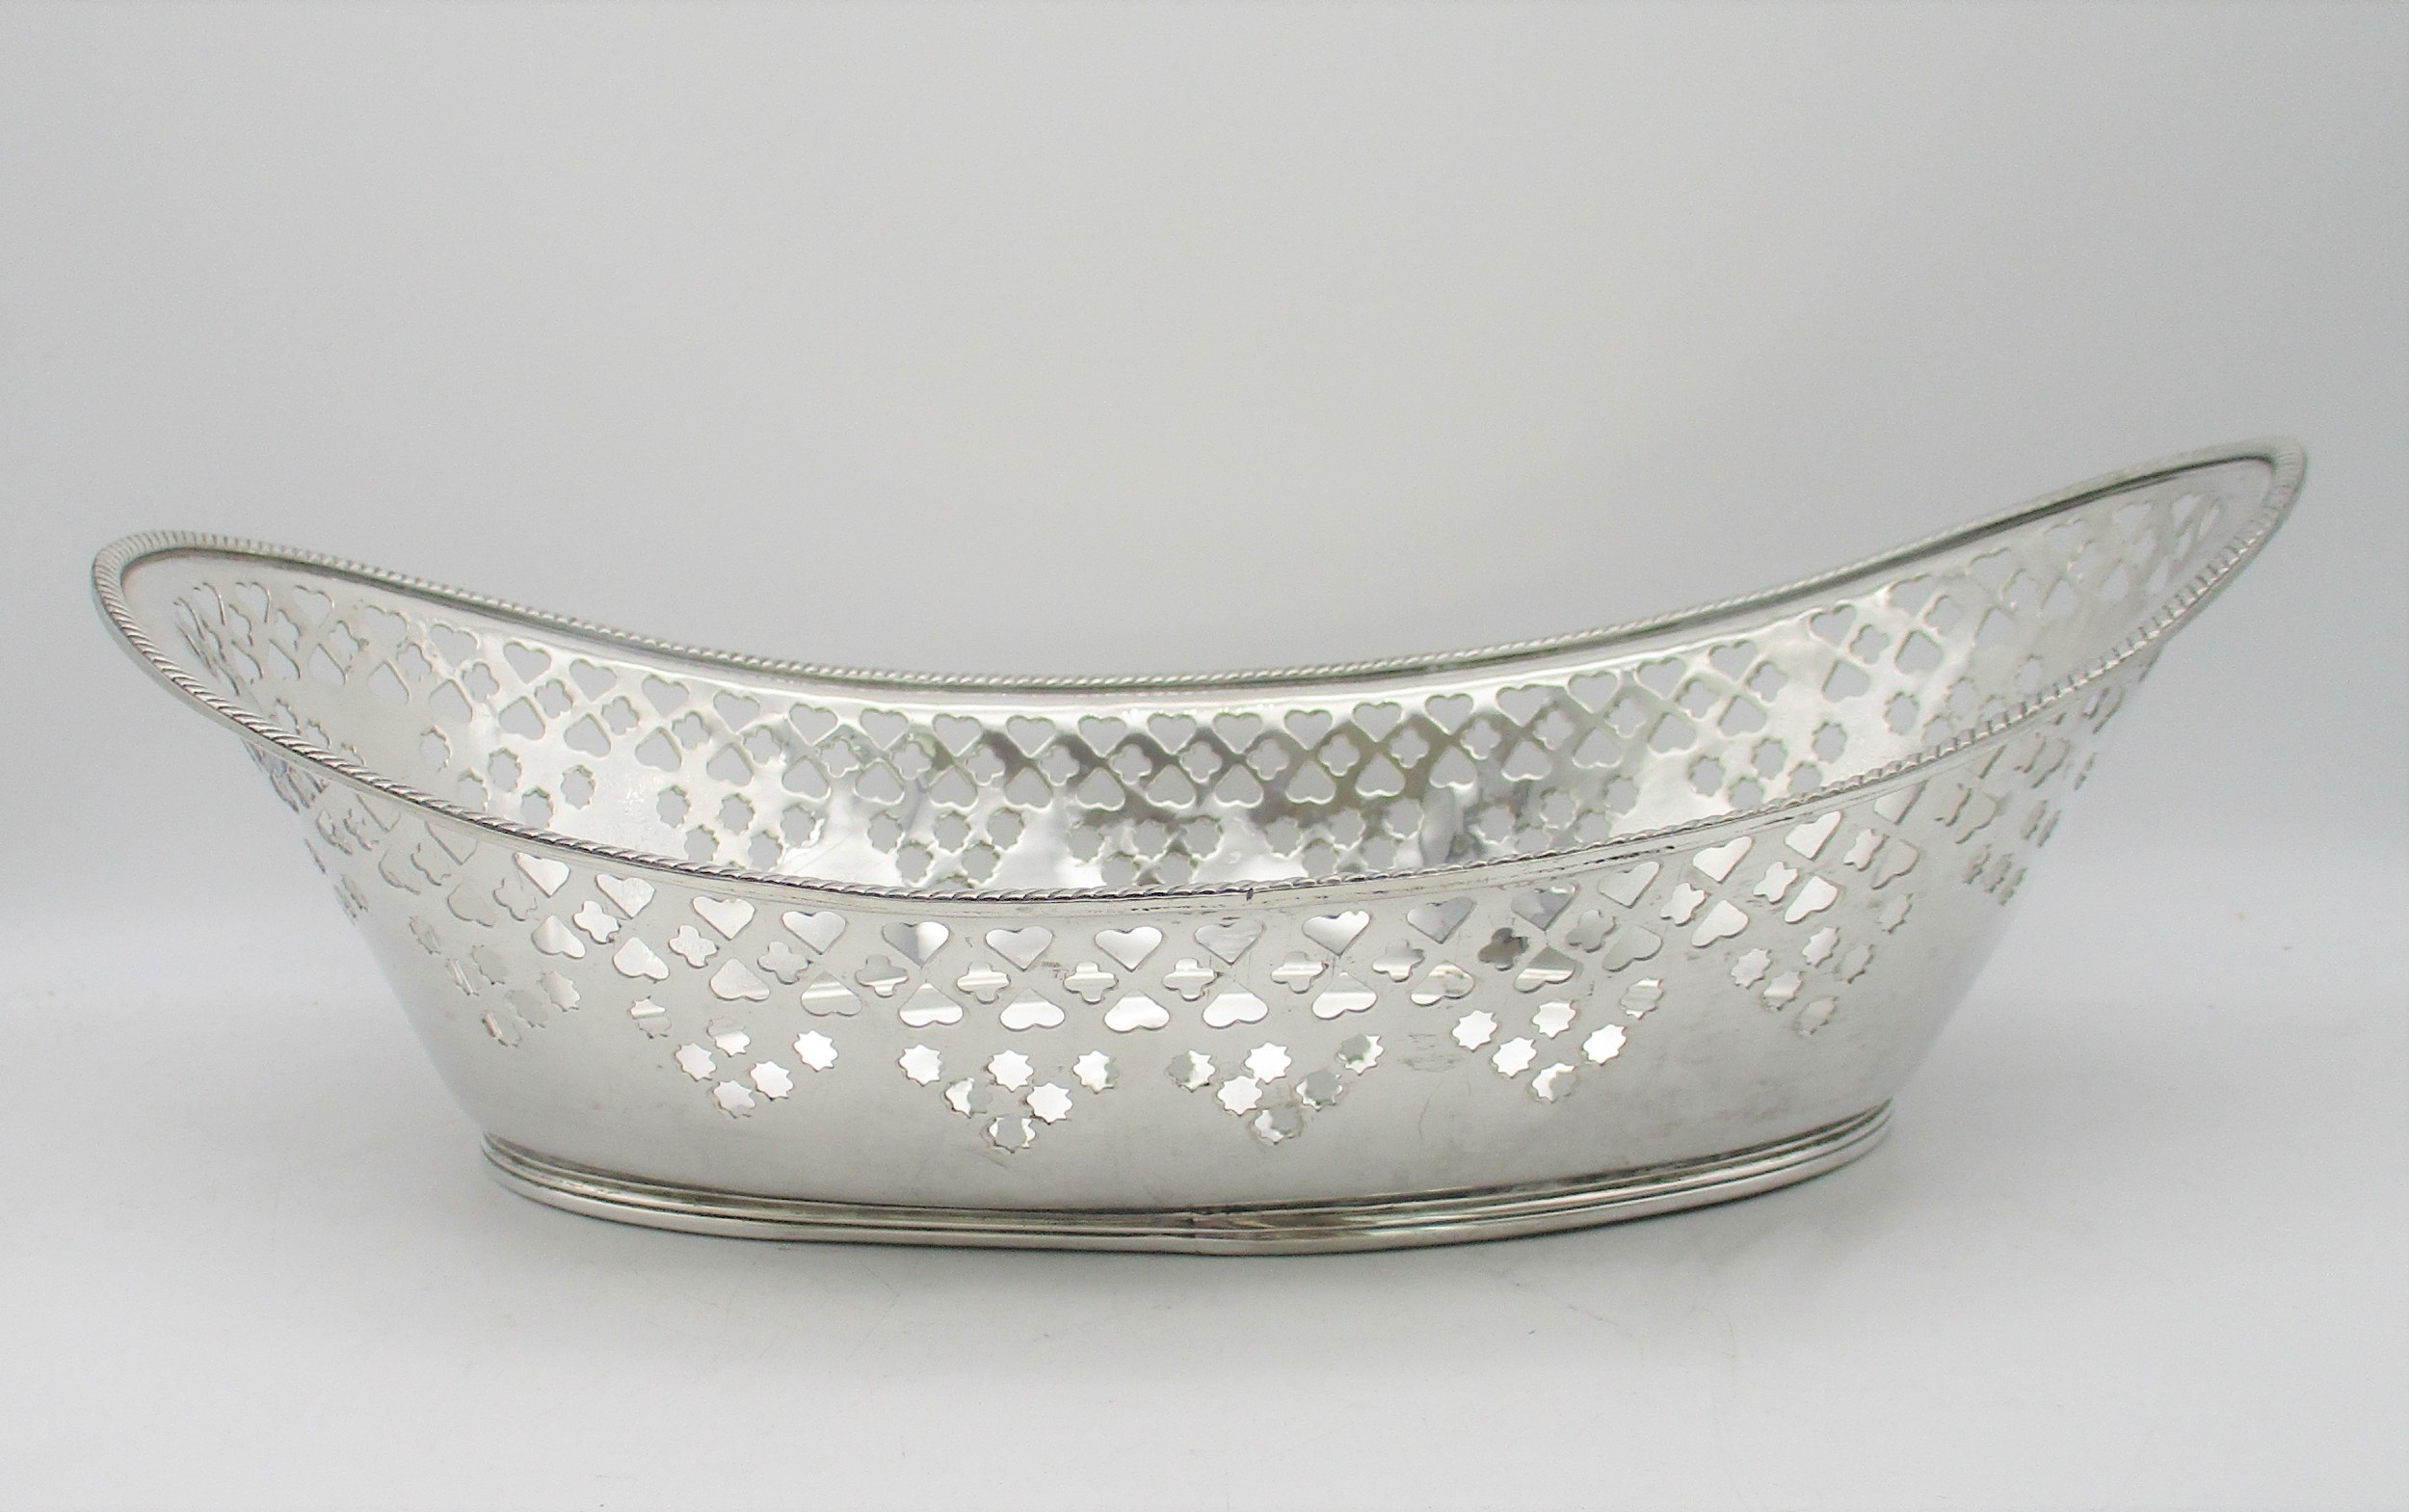 very large mid 19th century silver plated bread basket